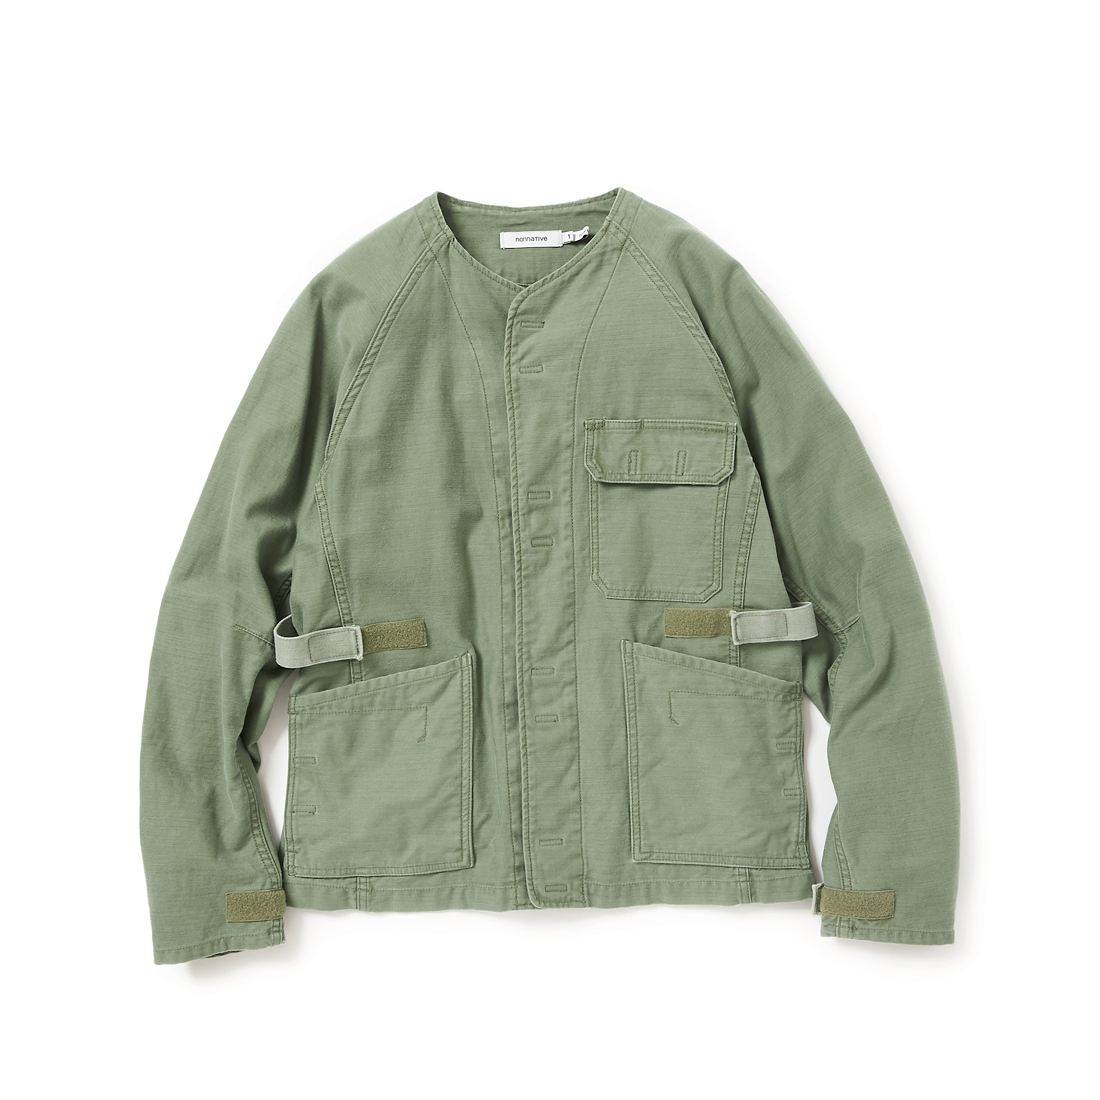 nonnative / GARDENER JACKET COTTON BACK SATIN OVERDYED VW -Olive